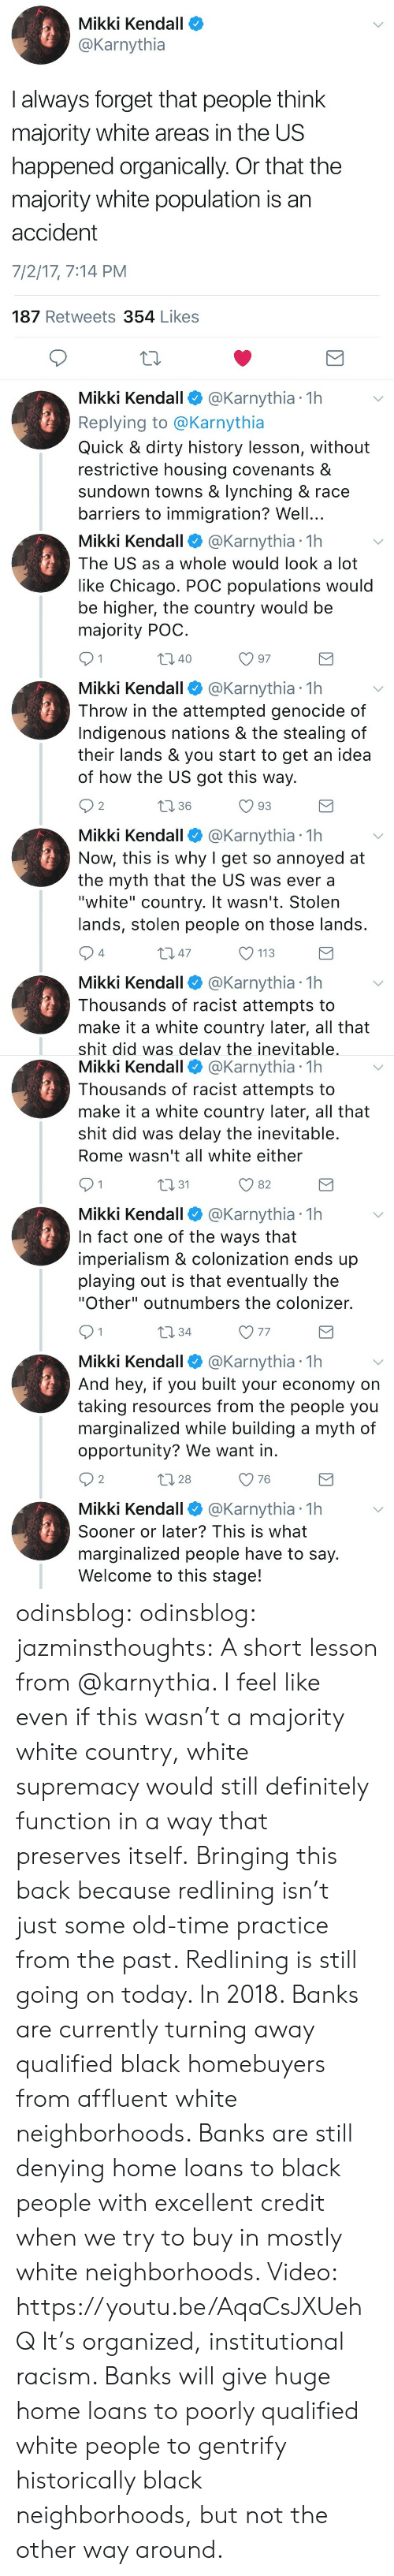 """Chicago, Definitely, and Racism: Mikki Kendall  @Karnythia  I always forget that people think  majority white areas in the US  happened organically. Or that the  majority white population is an  accident  7/2/17, 7:14 PM  187 Retweets 354 Likes  10  Mikki Kendall @Karnythia 1h  Replying to @Karnythia  Quick & dirty history lesson, without  restrictive housing covenants &  sundown towns & lynching & race  barriers to immigration? Well...   Mikki Kendall@Karnythia 1h  The US as a whole would look a lot  like Chicago. POC populations would  be higher, the country would be  majority POC  40  Mikki Kendall @Karnythia 1h  Throw in the attempted genocide of  Indigenous nations & the stealing of  their lands & you start to get an idea  of how the US got this way.  2  1 36  Mikki Kendall@Karnythia 1h  Now, this is why I get so annoyed at  the myth that the US was ever a  """"white"""" country. It wasn't. Stolen  lands, stolen people on those lands  4  m 47  113  Mikki Kendall @Karnythia 1h  Thousands of racist attempts to  make it a white country later, all that  shit did was delav the inevitable   Mikki Kendall @Karnythia 1h  Thousands of racist attempts to  make it a white country later, all that  shit did was delay the inevitable  Rome wasn't all white either  n31  O 82  Mikki Kendall @Karnythia 1h  In fact one of the ways that  imperialism & colonization ends up  playing out is that eventually the  """"Other"""" outnumbers the colonizer.  10 34  V 77  Mikki Kendall @Karnythia 1h  And hey, if you built your economy on  taking resources from the people you  marginalized while building a myth of  opportunity? We want in  2  28  O 76  Mikki Kendall @Karnythia 1h  Sooner or later? This is what  marginalized people have to say  Welcome to this stage! odinsblog:  odinsblog:  jazminsthoughts:  A short lesson from @karnythia.   I feel like even if this wasn't a majority white country, white supremacy would still definitely function in a way that preserves itself.  Bringing this back because """